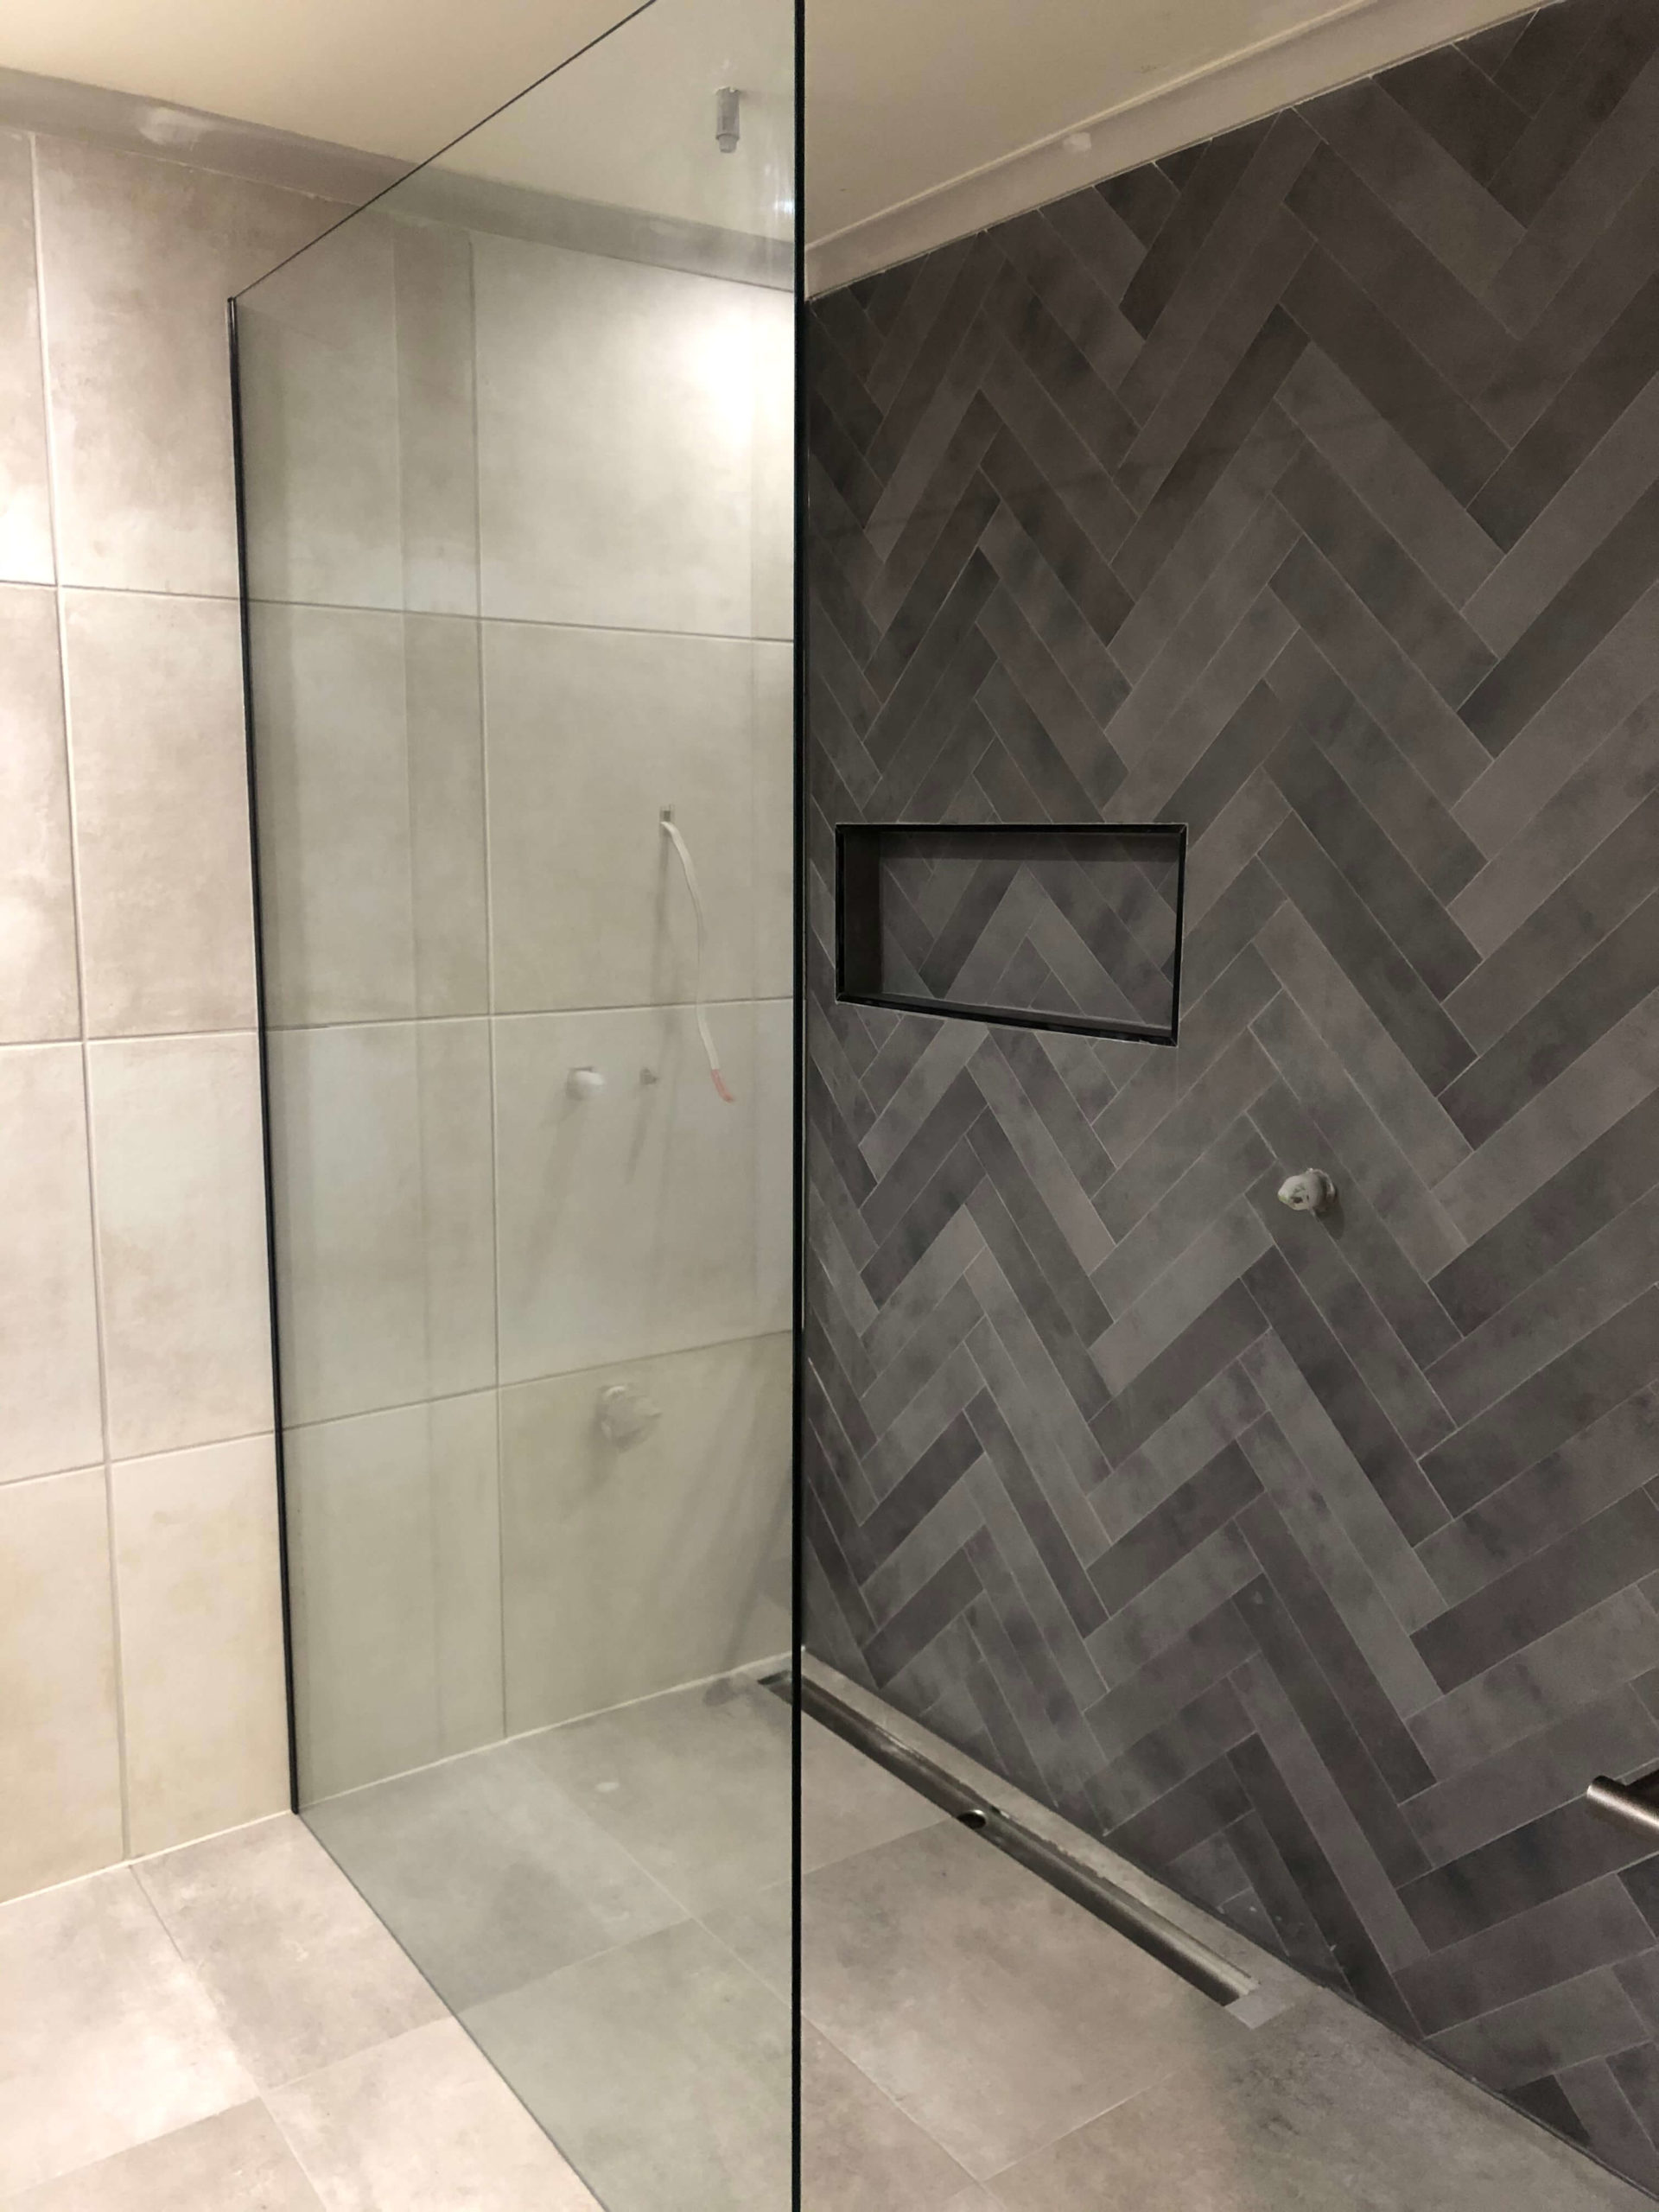 Freestanding Toughened Safety Glass Shower Screen with Black Wall Channel